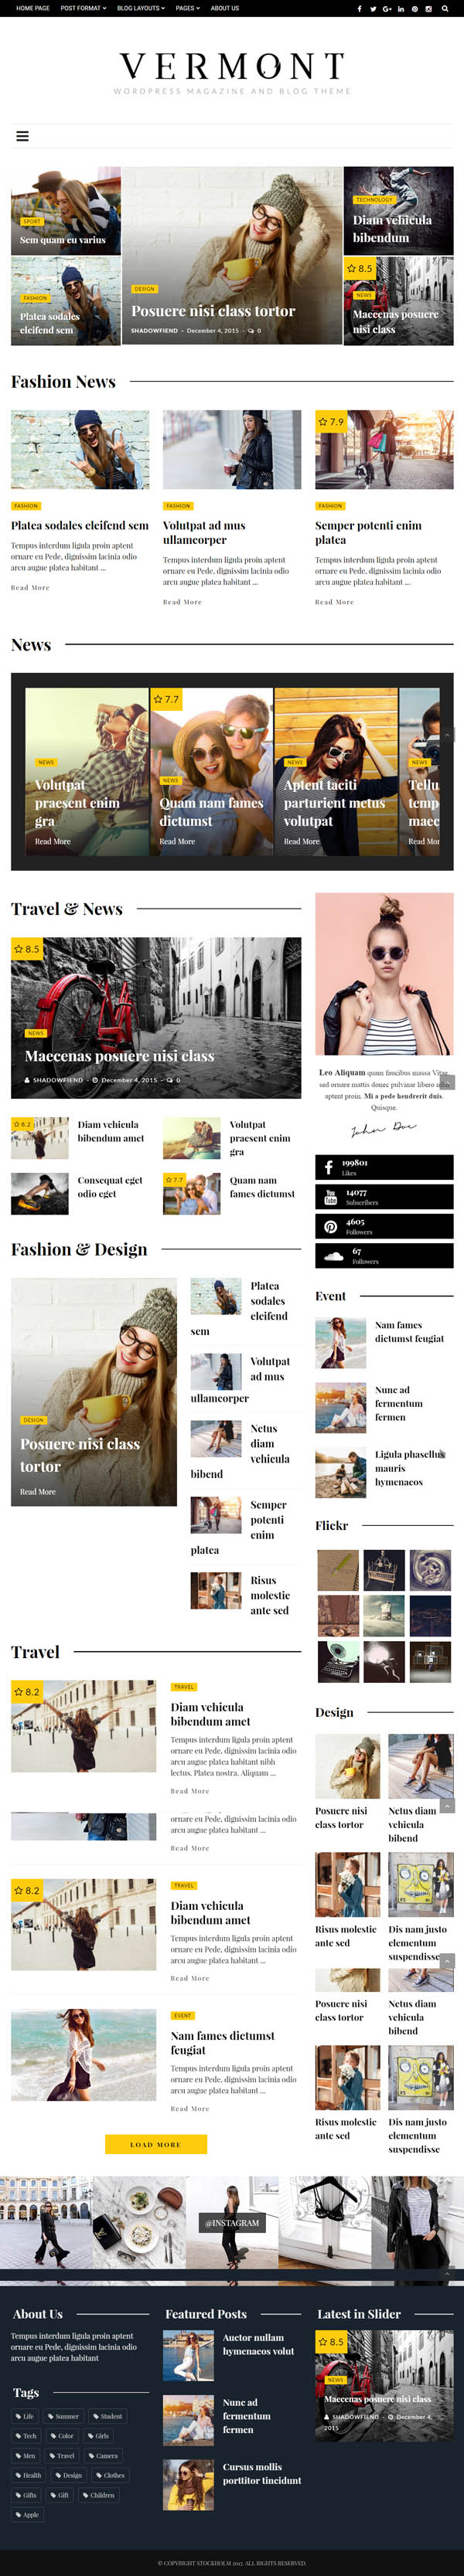 Vermont - WordPress Magazine and Blog Theme